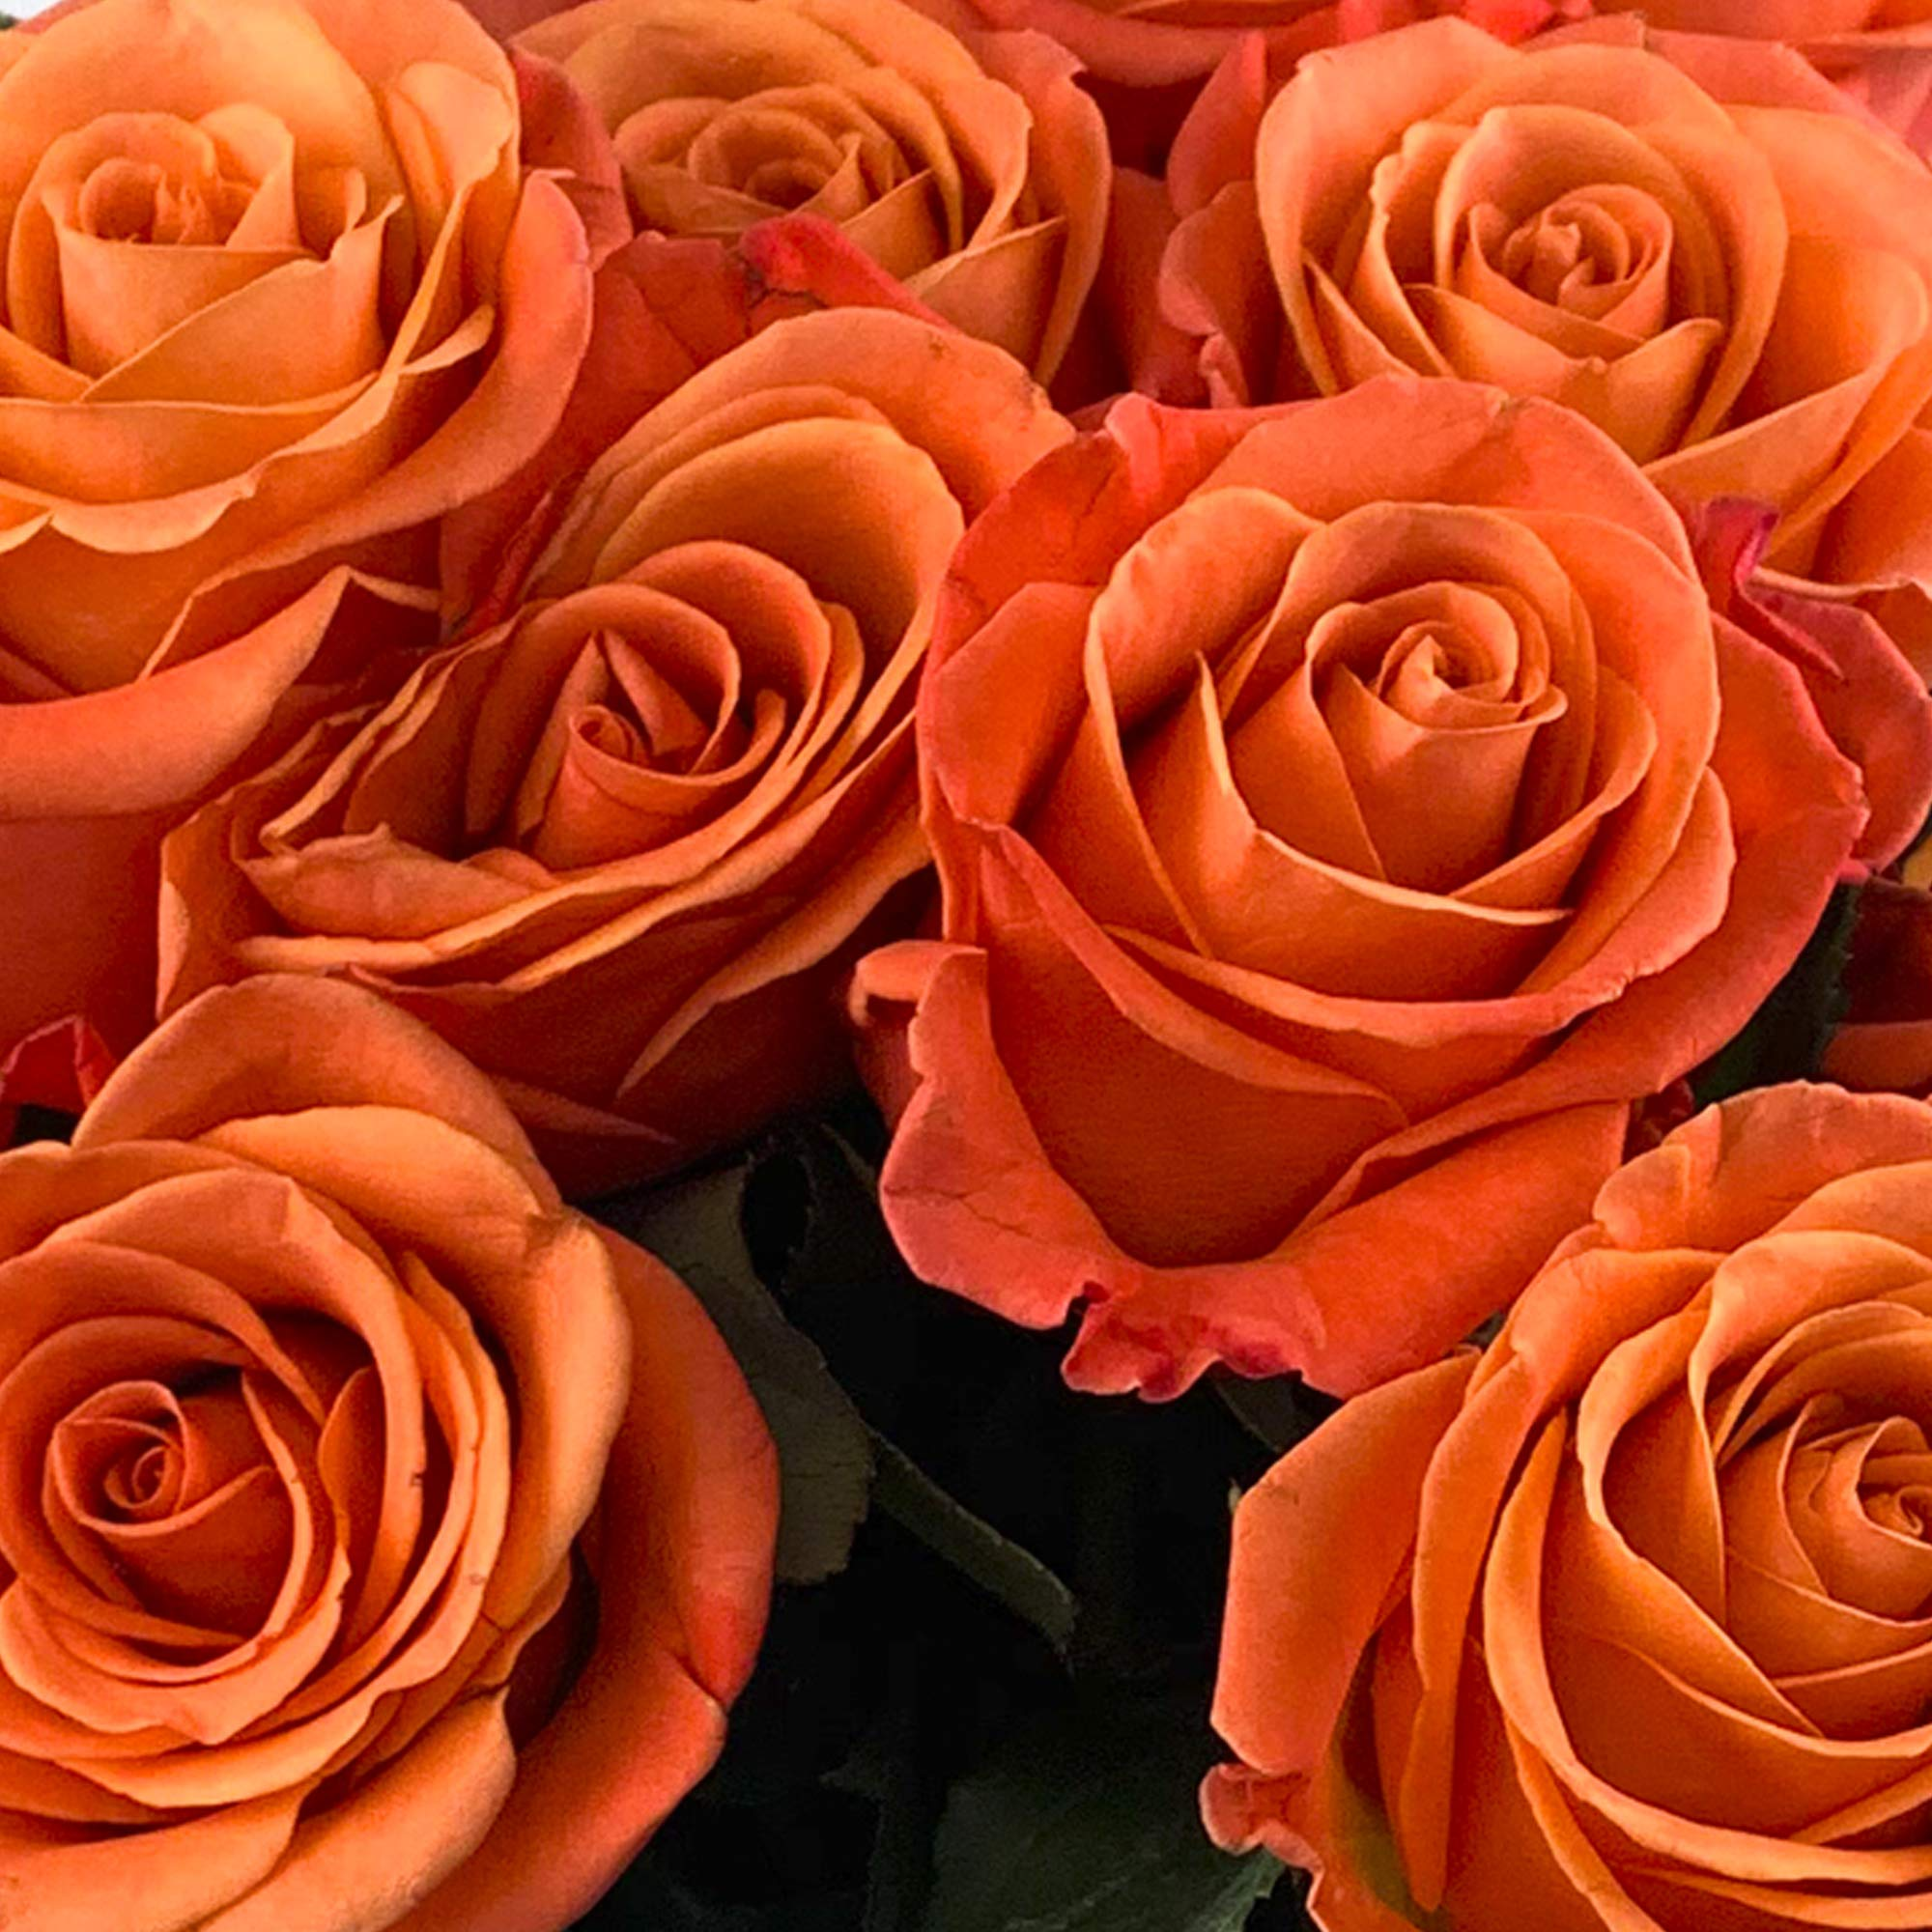 Green Choice Flowers - 24 (2 Dozen) Premium Orange Fresh Roses with 20 inch Long Stem Farm Fresh Flowers Beautiful Orange Rose Flower Cut Per Order Direct from Farm Free Fast Delivery Long Lasting by Greenchoiceflowers (Image #2)